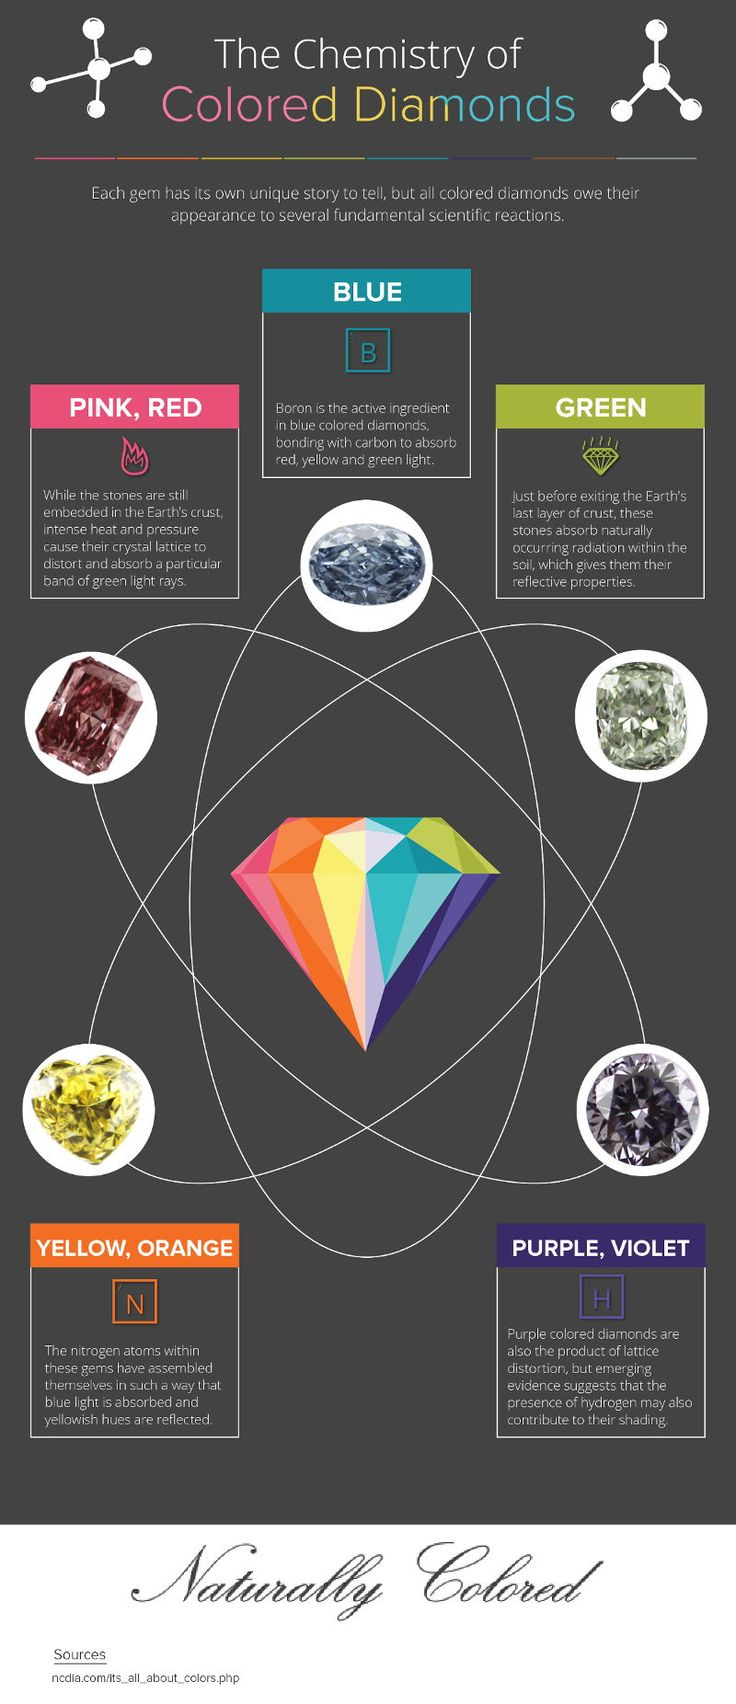 How are colored diamonds made? What is the cause of each color? Which color is a result of natural radiation? These questions and more answered